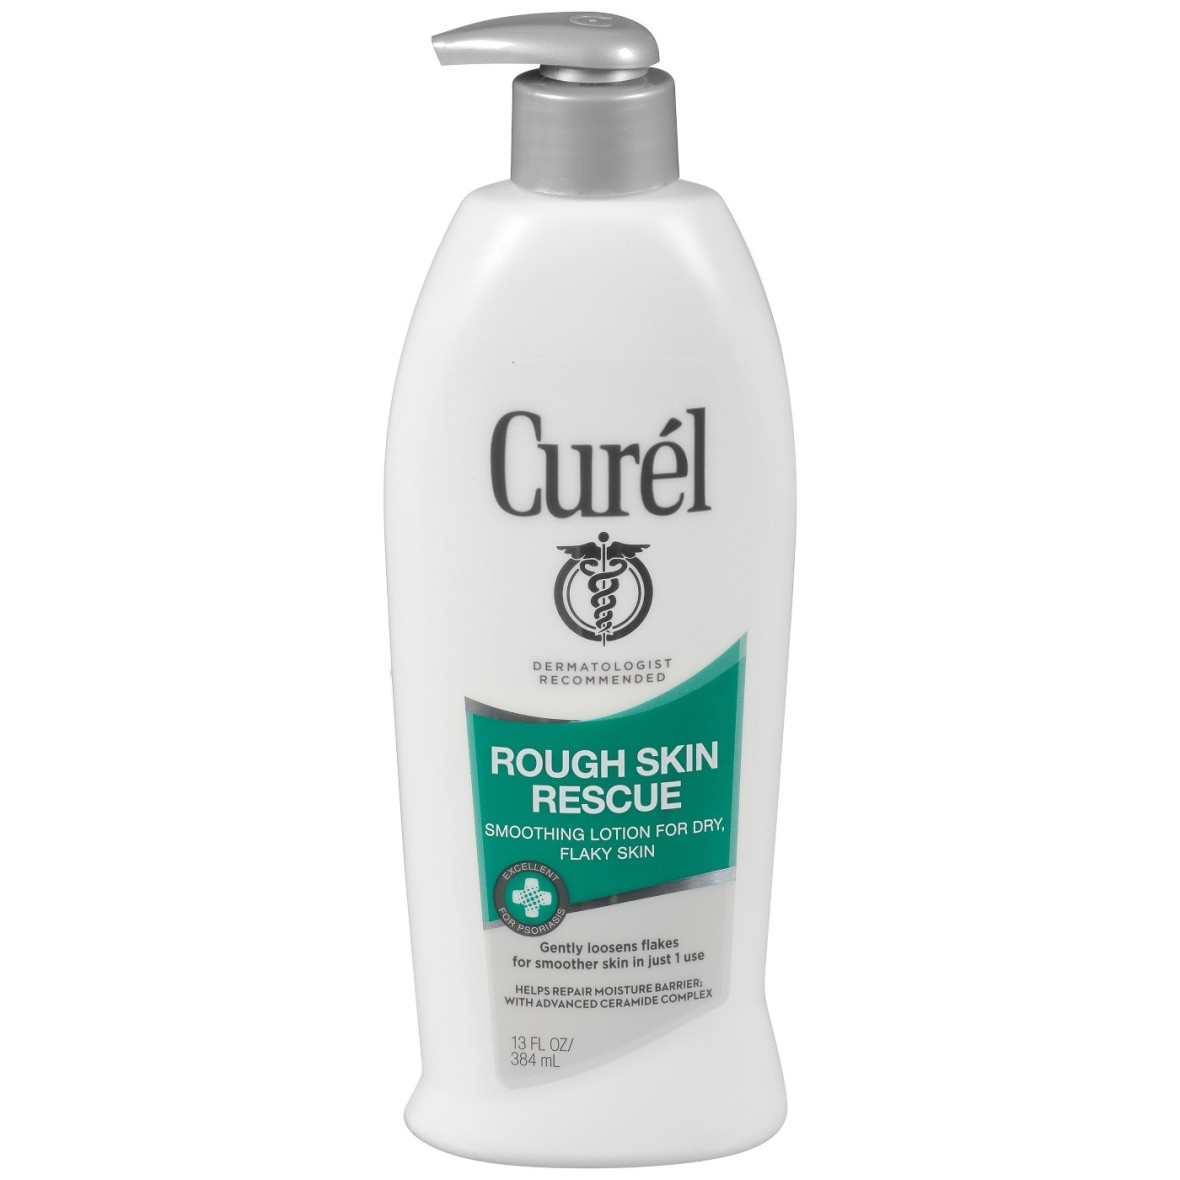 Curel Rough Skin Rescue Smoothing Lotion